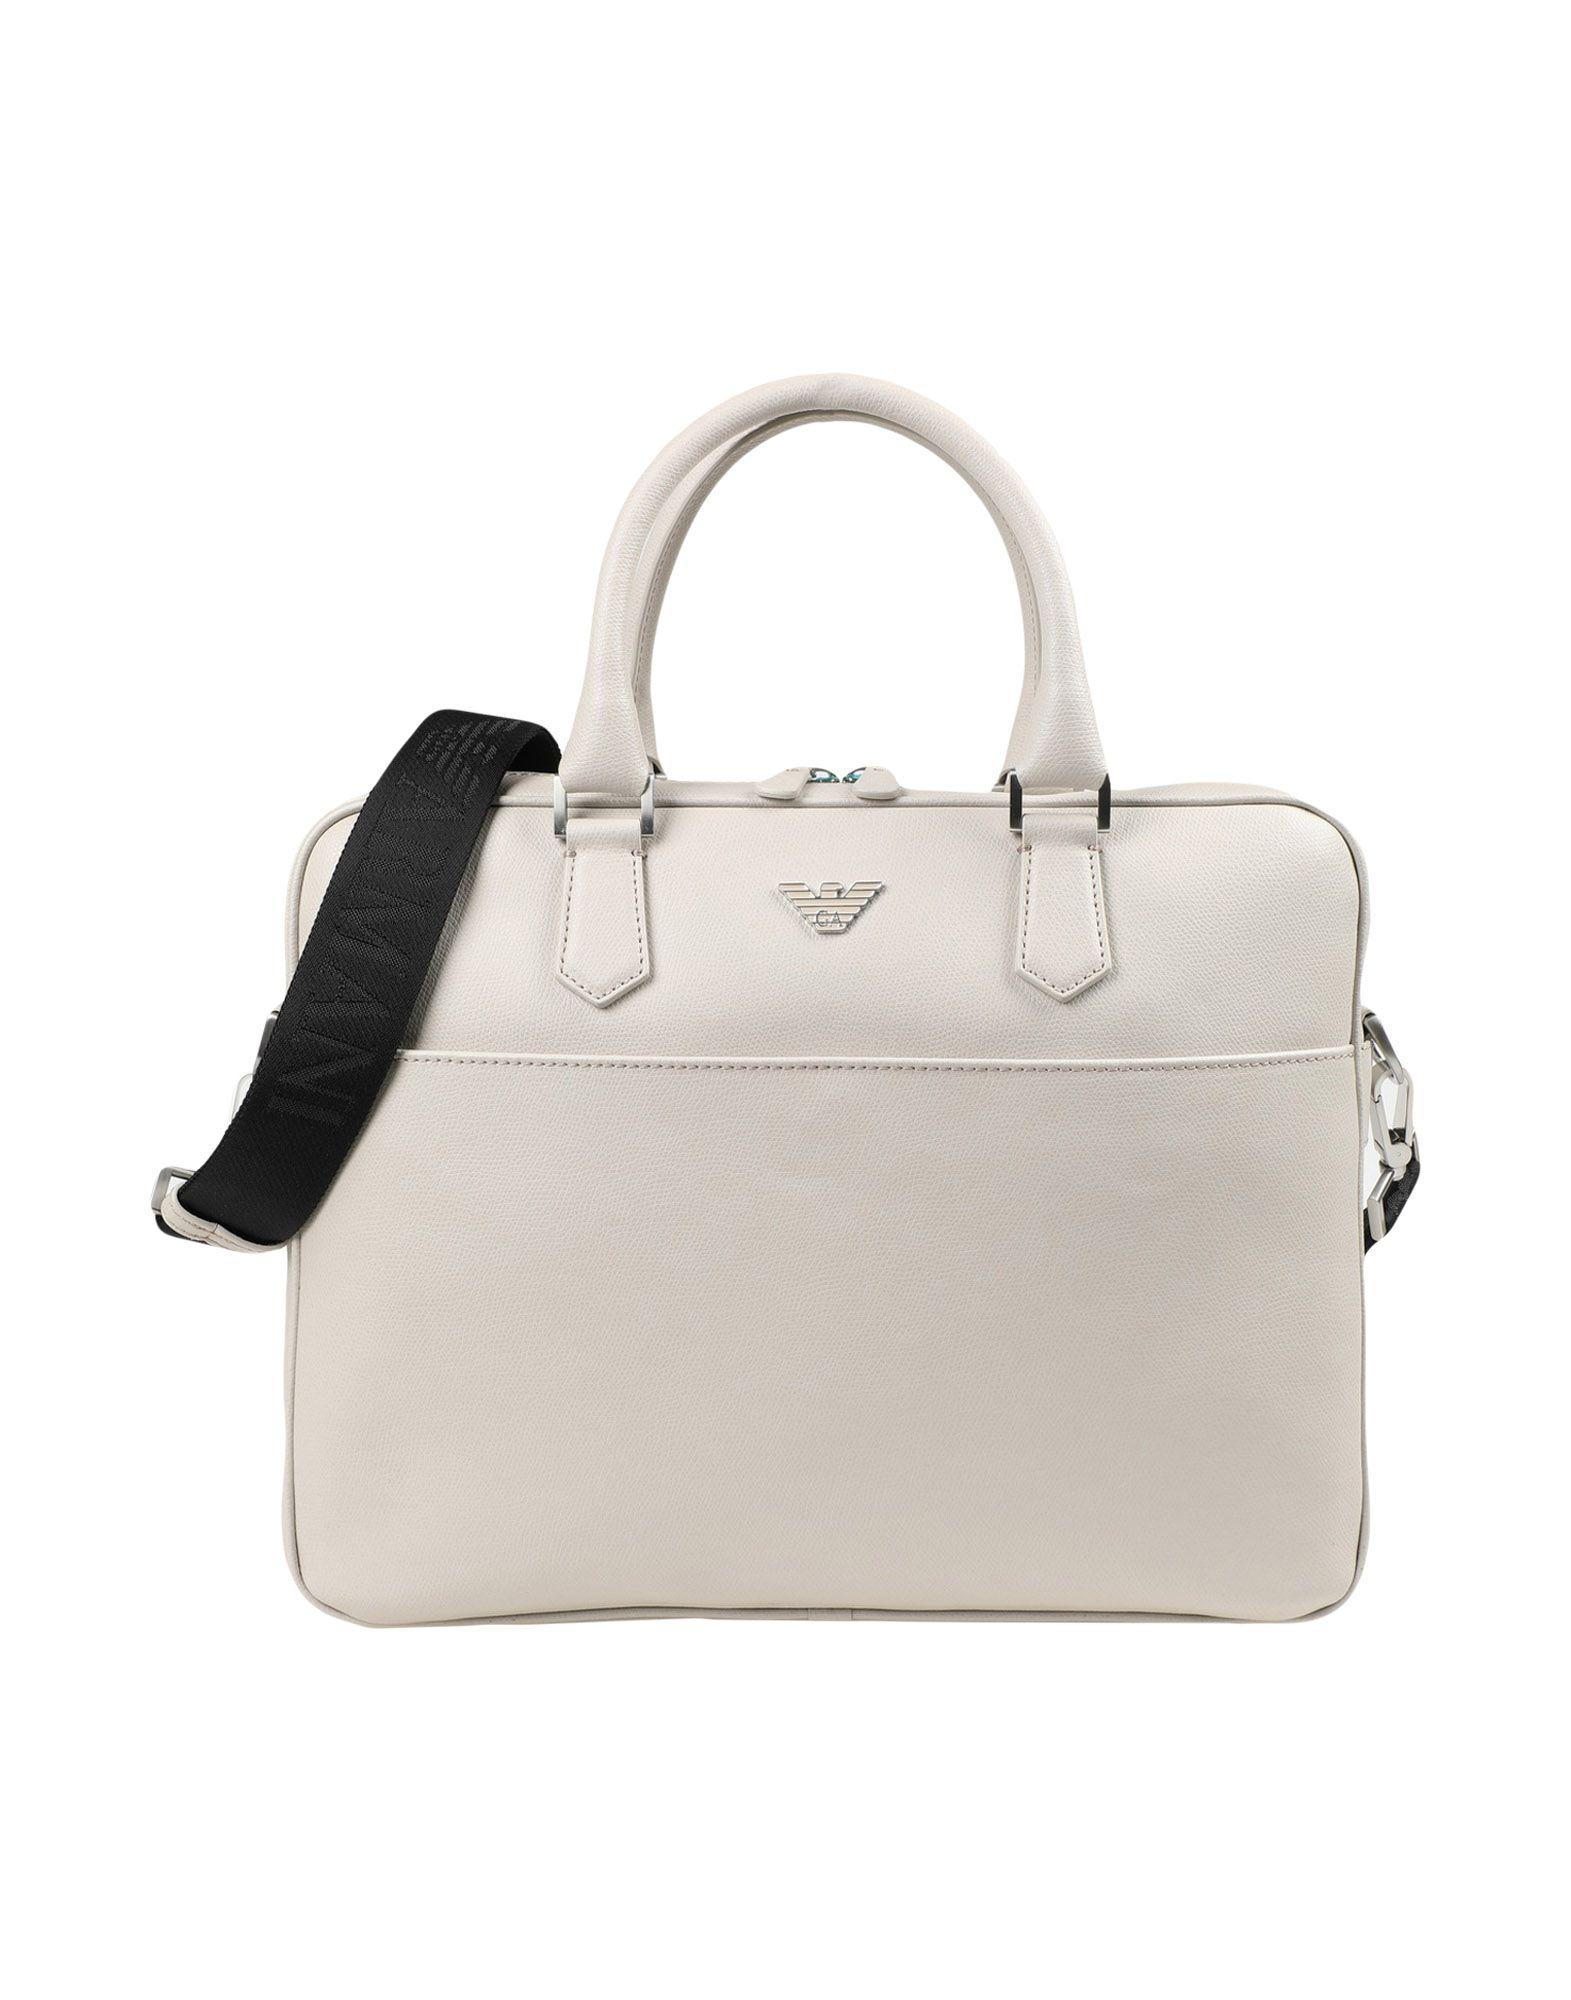 Emporio Armani Work Bag In Beige